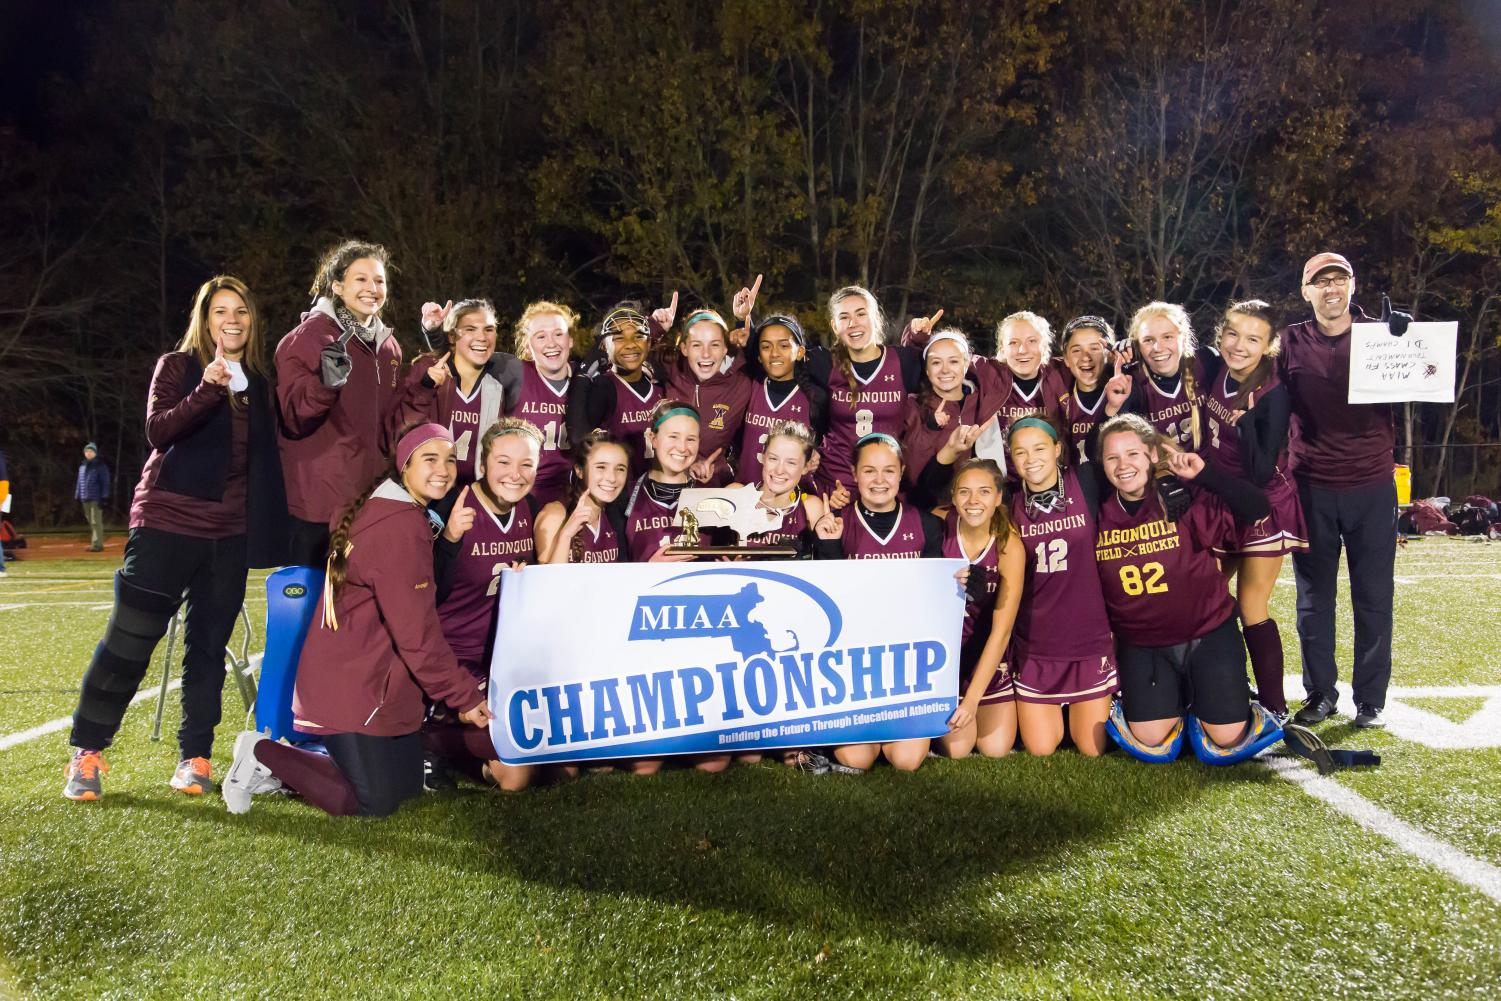 The girls field hockey team won the Central Massachusetts Championship on November 10, with a score of 1-0.